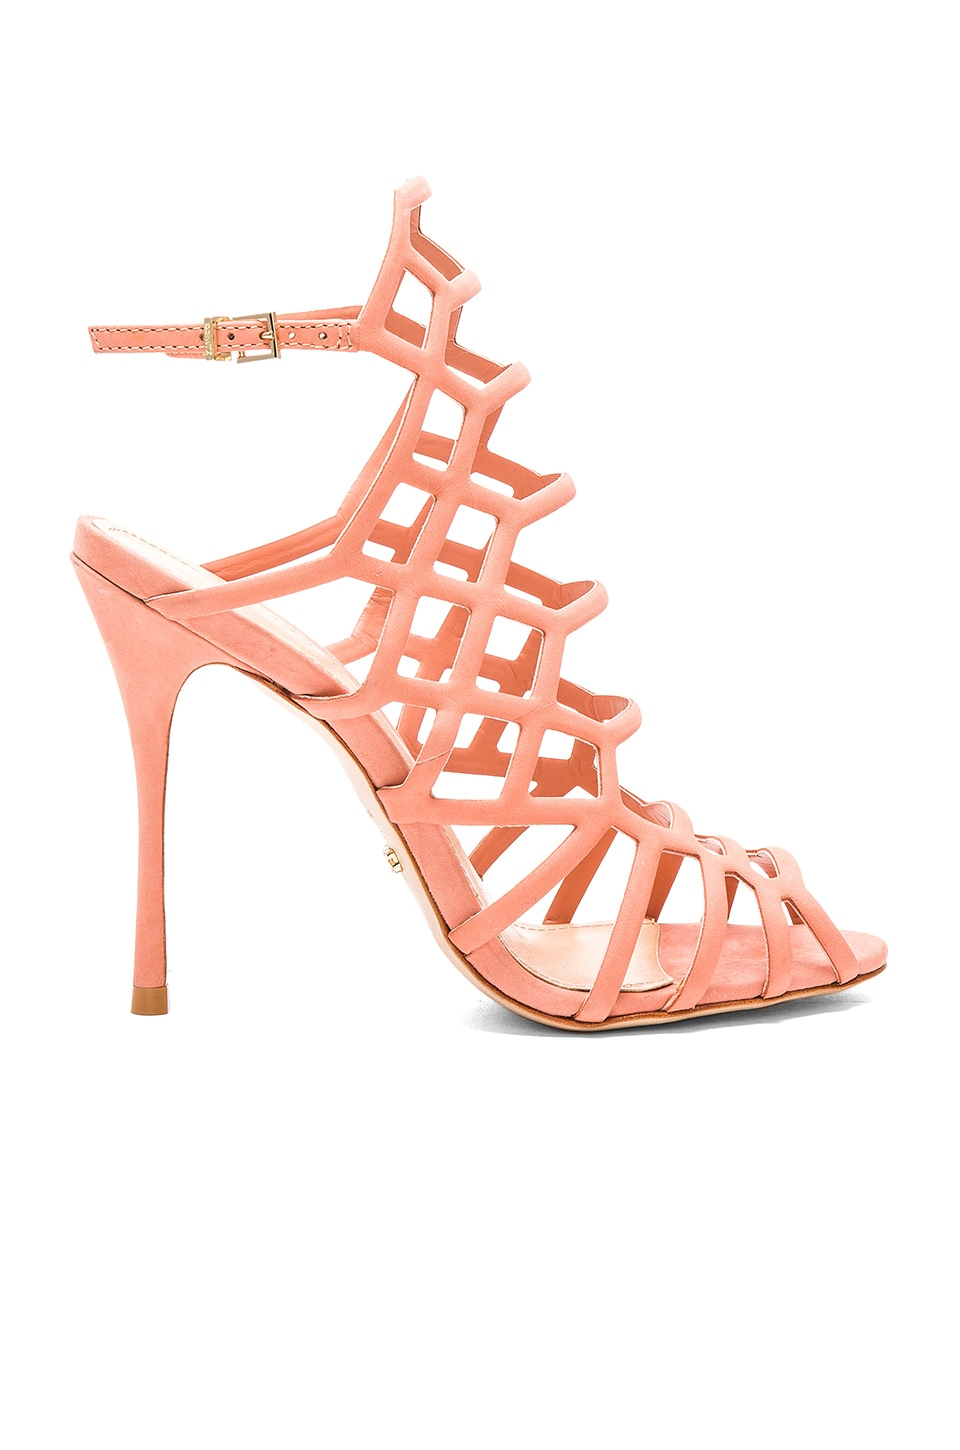 Schutz Juliana Heel in Sweet Peach